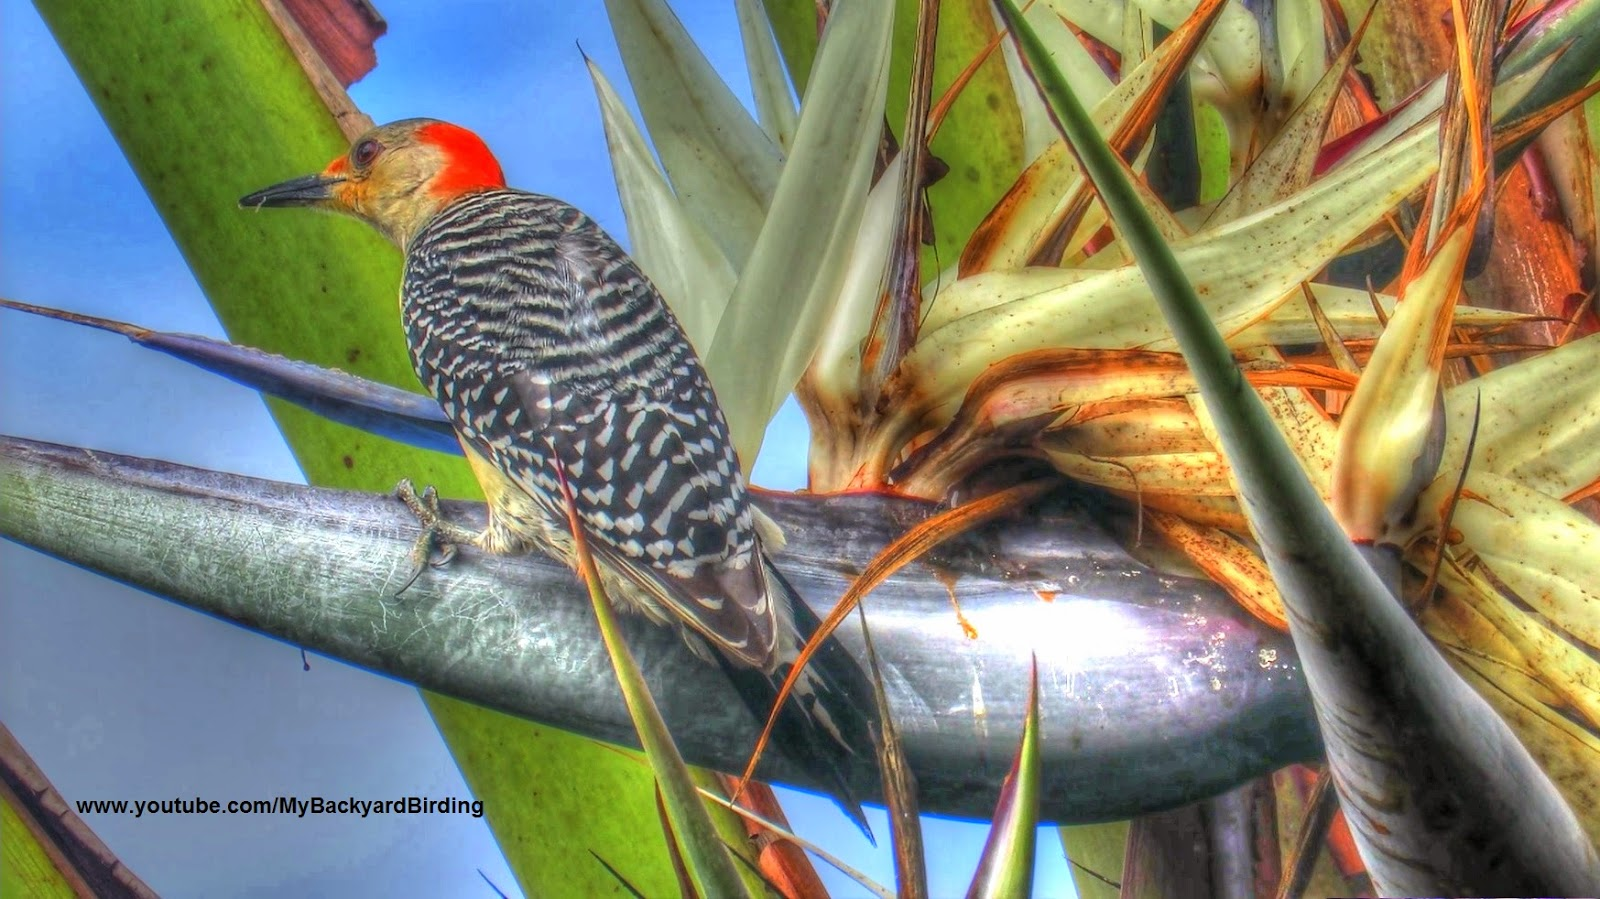 Red Bellied Woodpecker Eating Nectar of Giant White Bird of Paradise